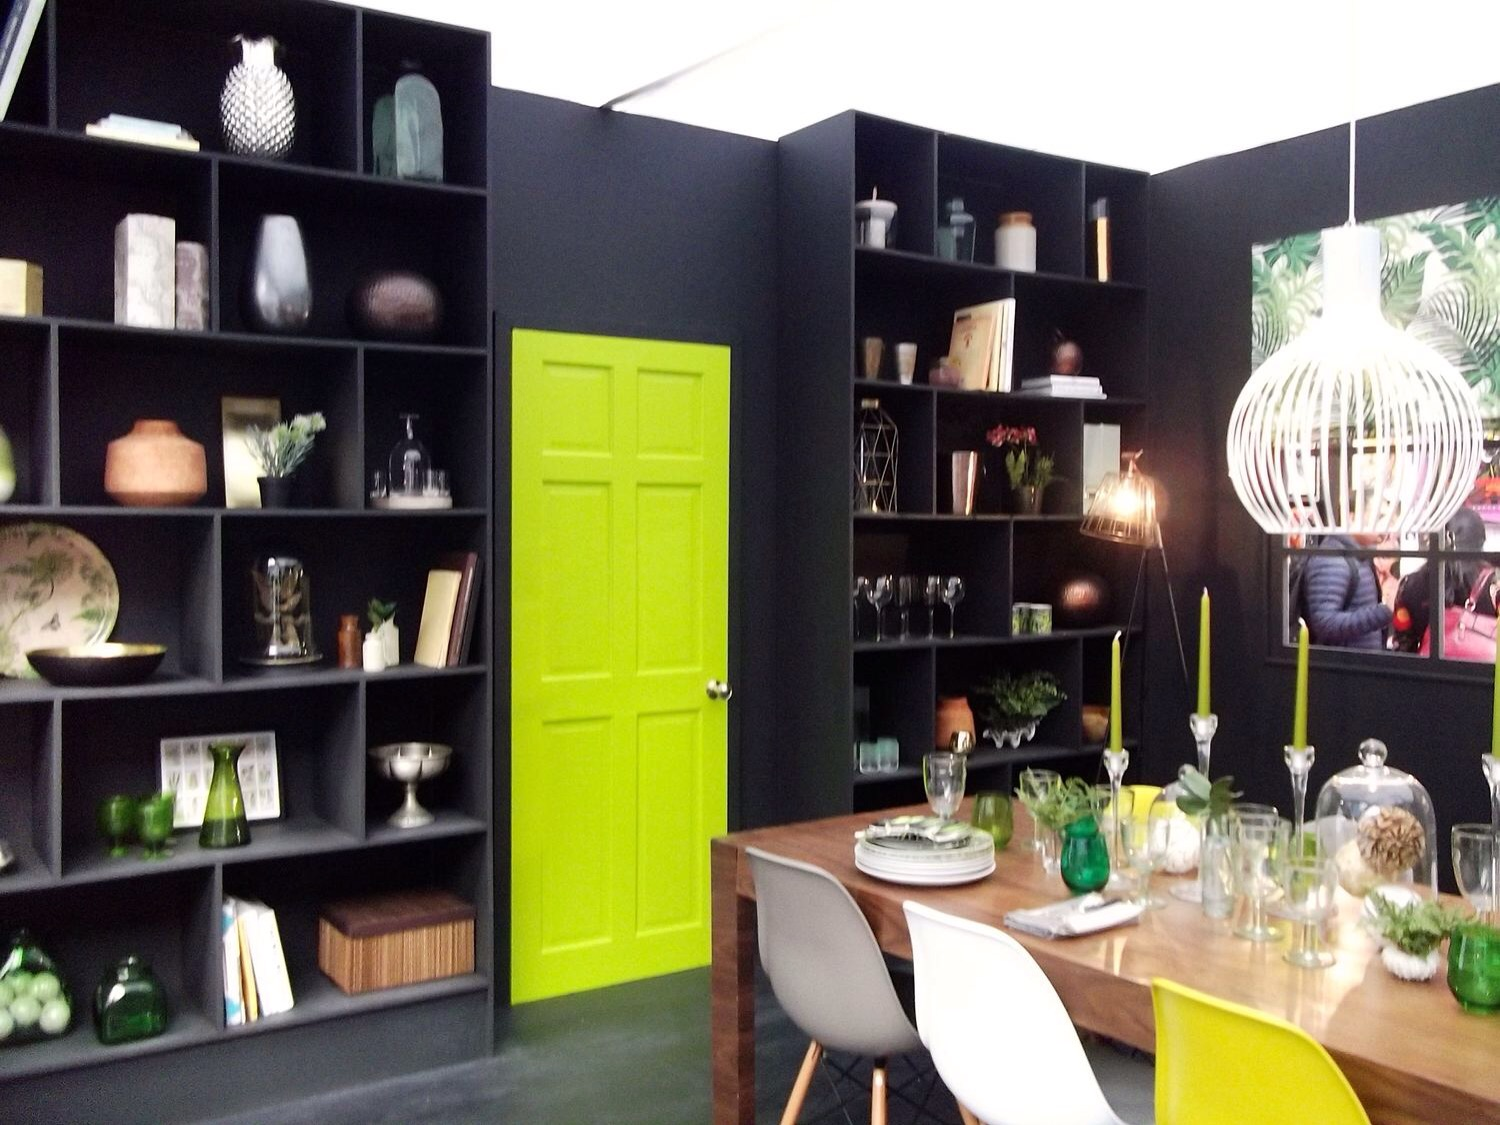 April: Room sets at the Ideal Home Show